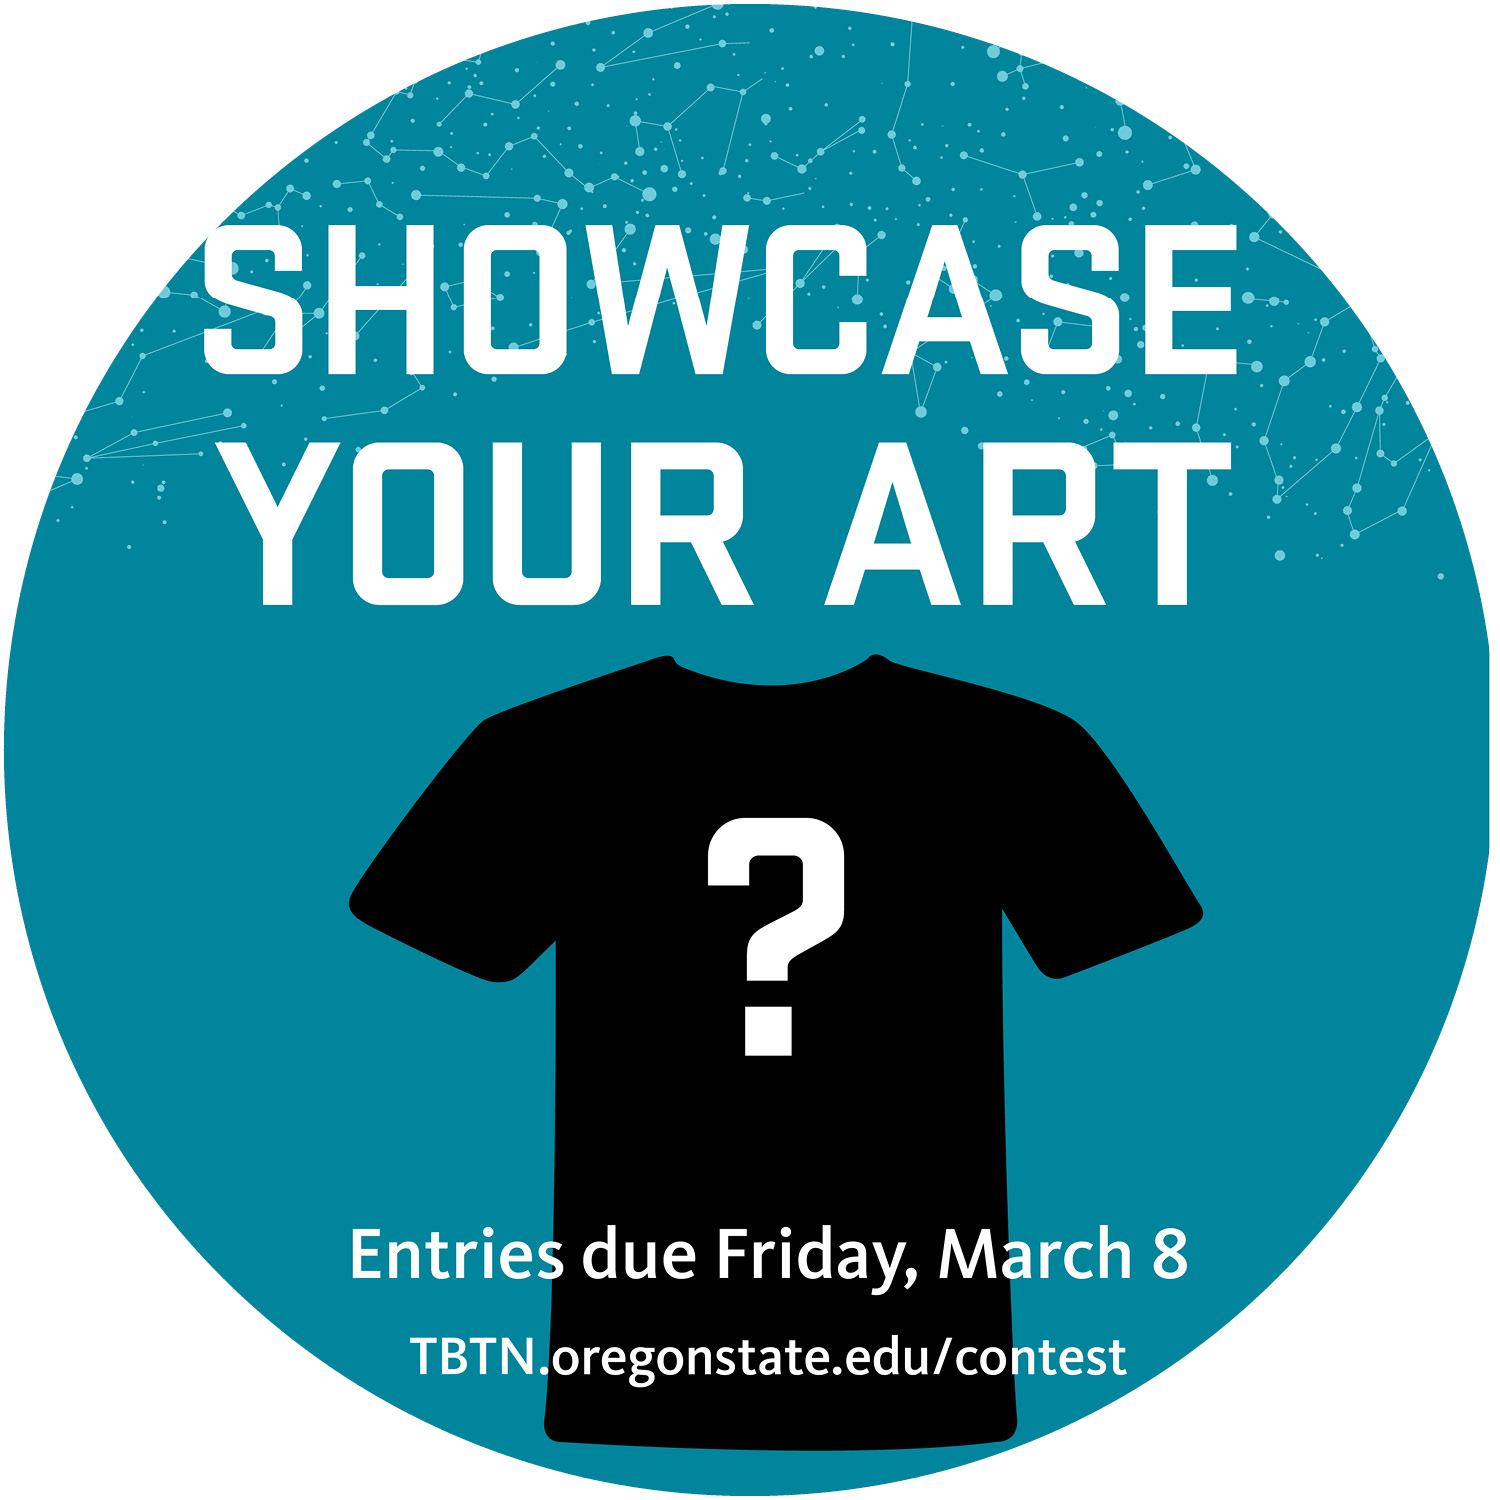 Teal circle with image of t-shirt that says Showcase Your Art Deadline March 8, 2019